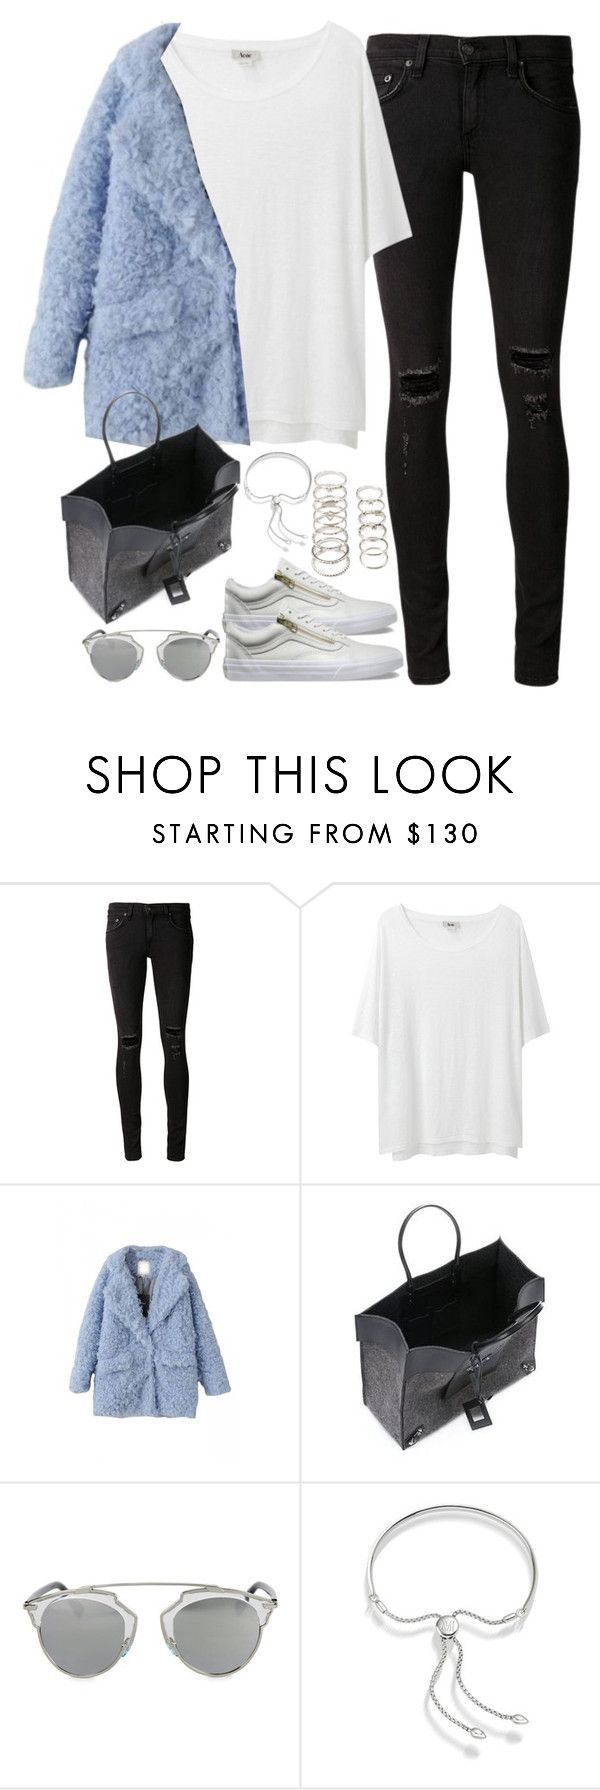 """Untitled#4083"" by fashionnfacts ❤ liked on Polyvore featuring rag & bone/JEAN, Acne Studios, Vans, Balenciaga, Christian Dior, Monica Vinader and Forever 21"